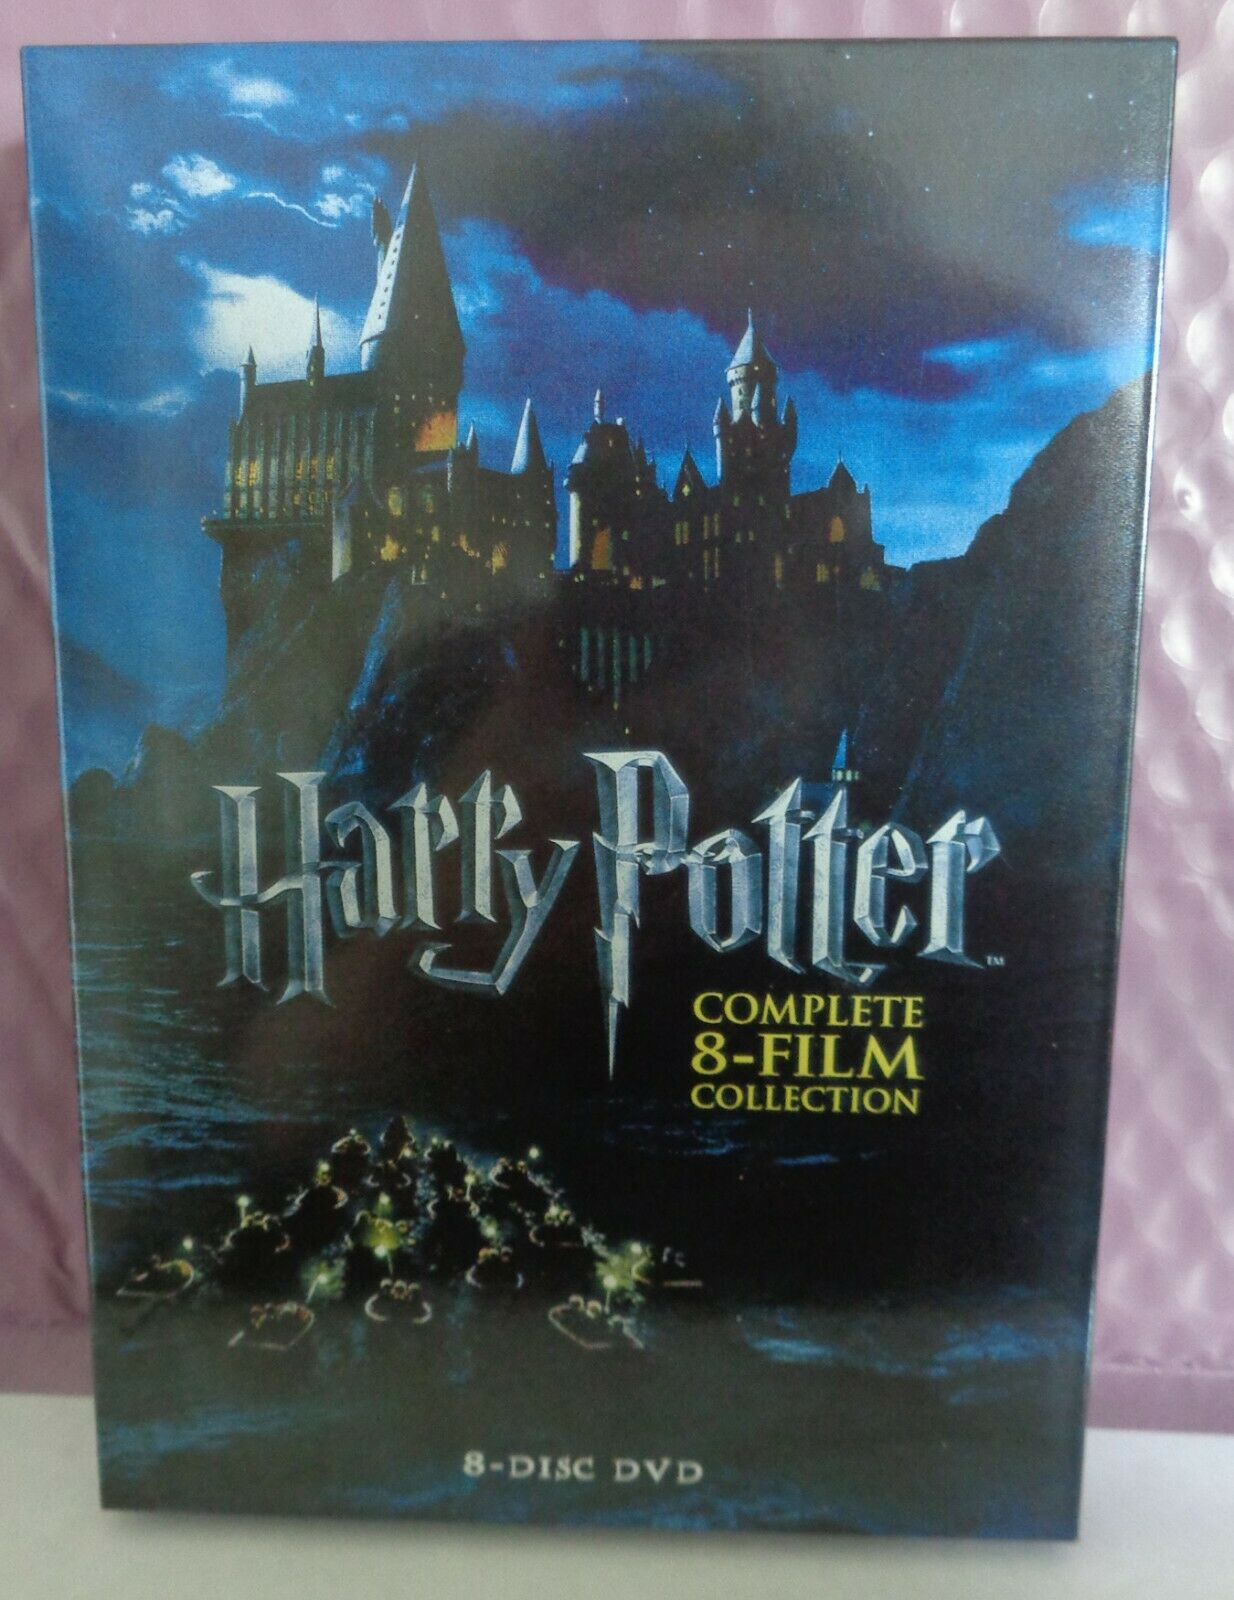 Harry Potter Complete 8-Film Collection DVD, 2011, 8-Disc Set  - $15.99